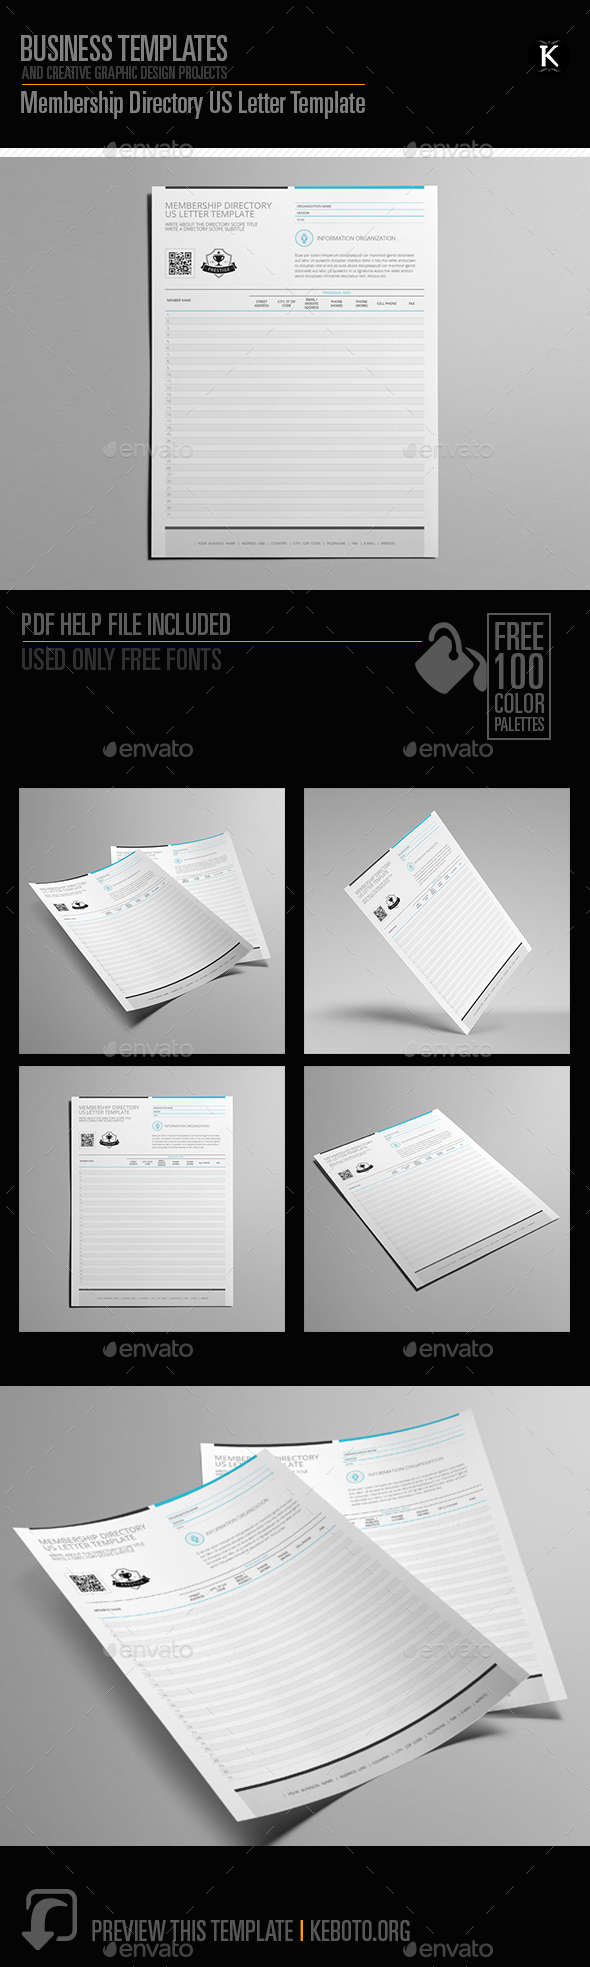 Membership Directory US Letter Template - Miscellaneous Print Templates